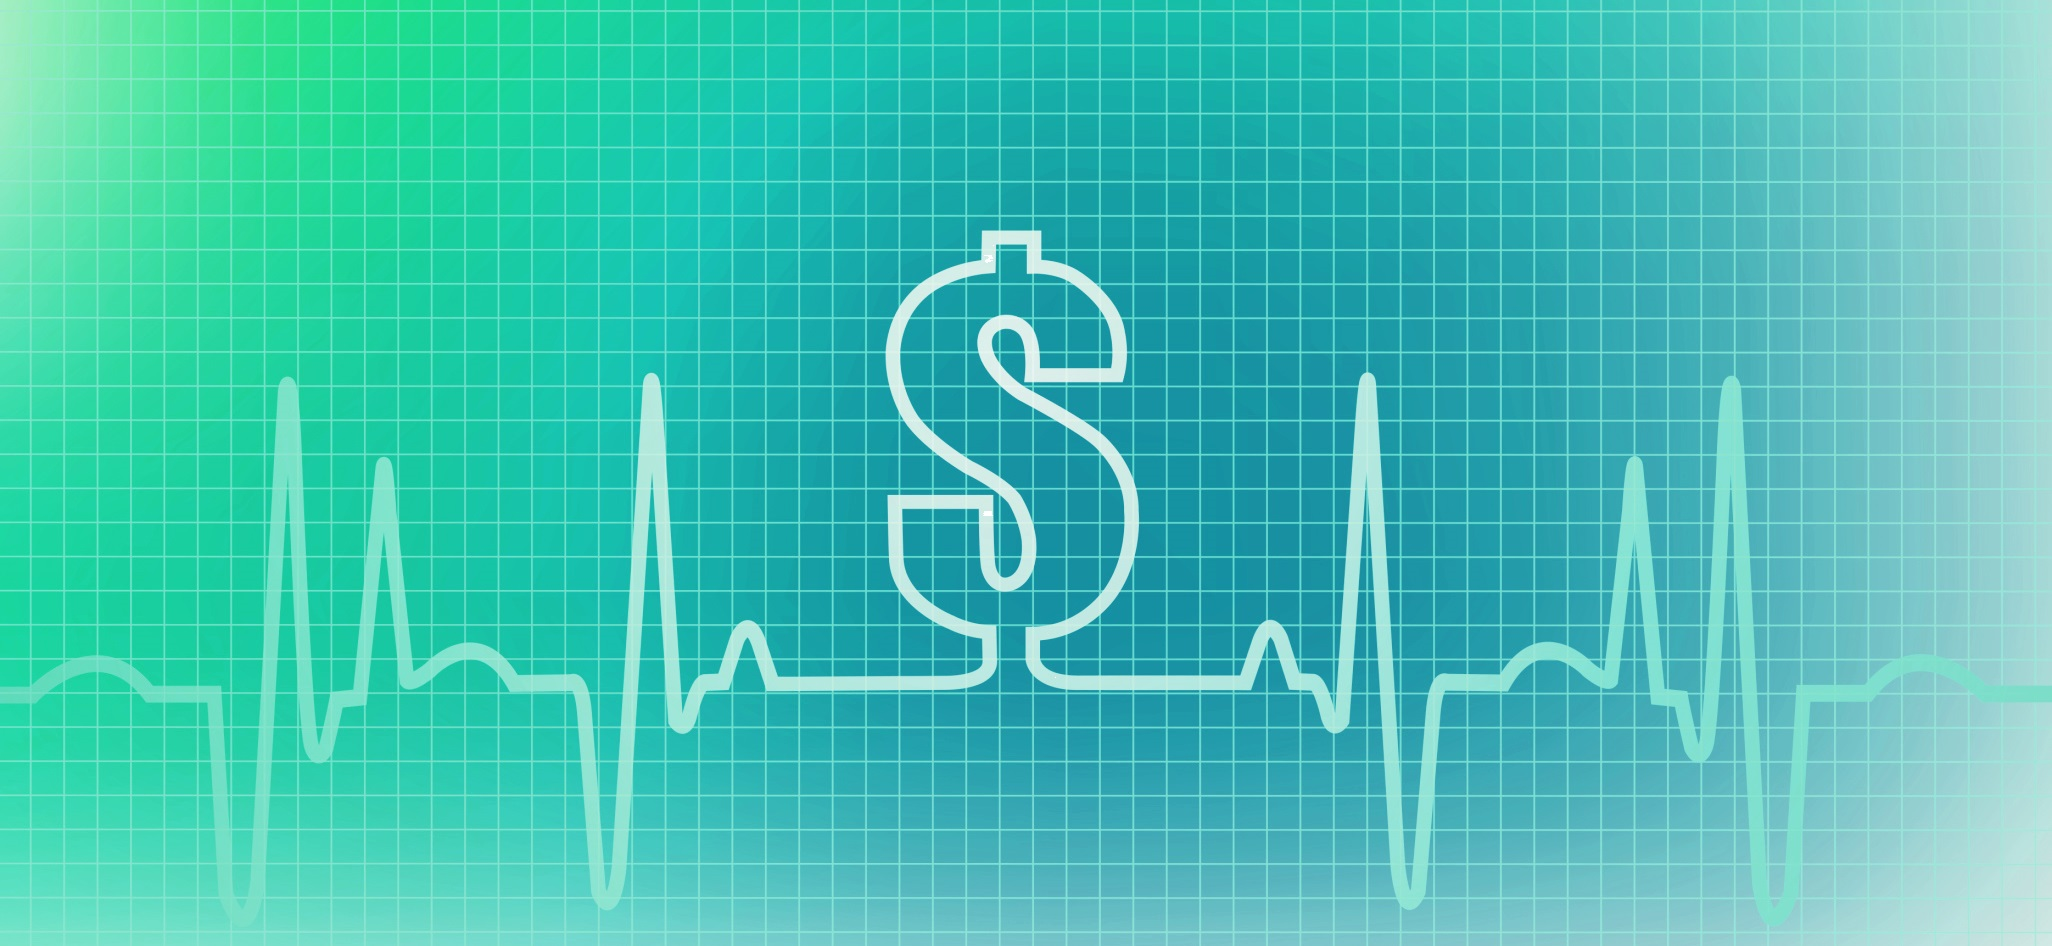 Affordable Health Insurance >> Using Revenue Cycle Analytics for Effective Value-Based Care